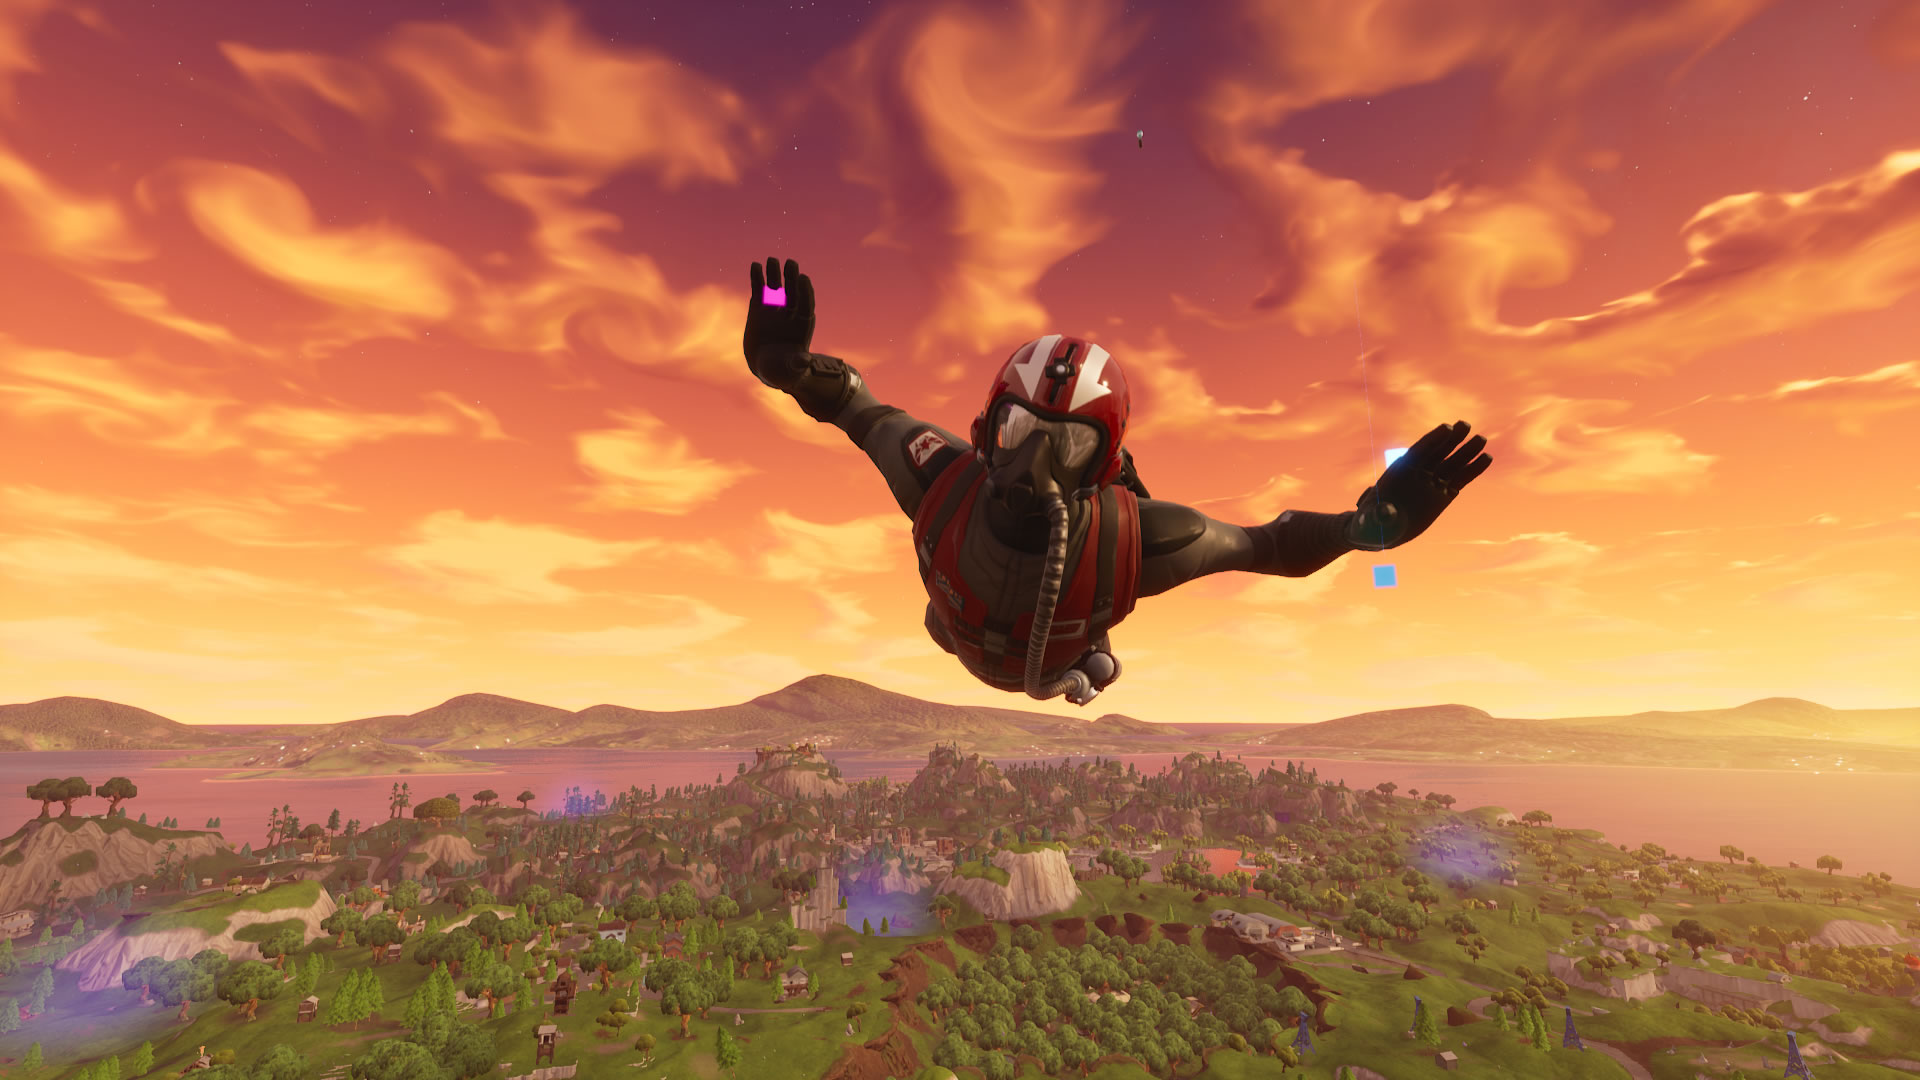 download wallpaper: Fortnite skydiver – Wingman wallpaper